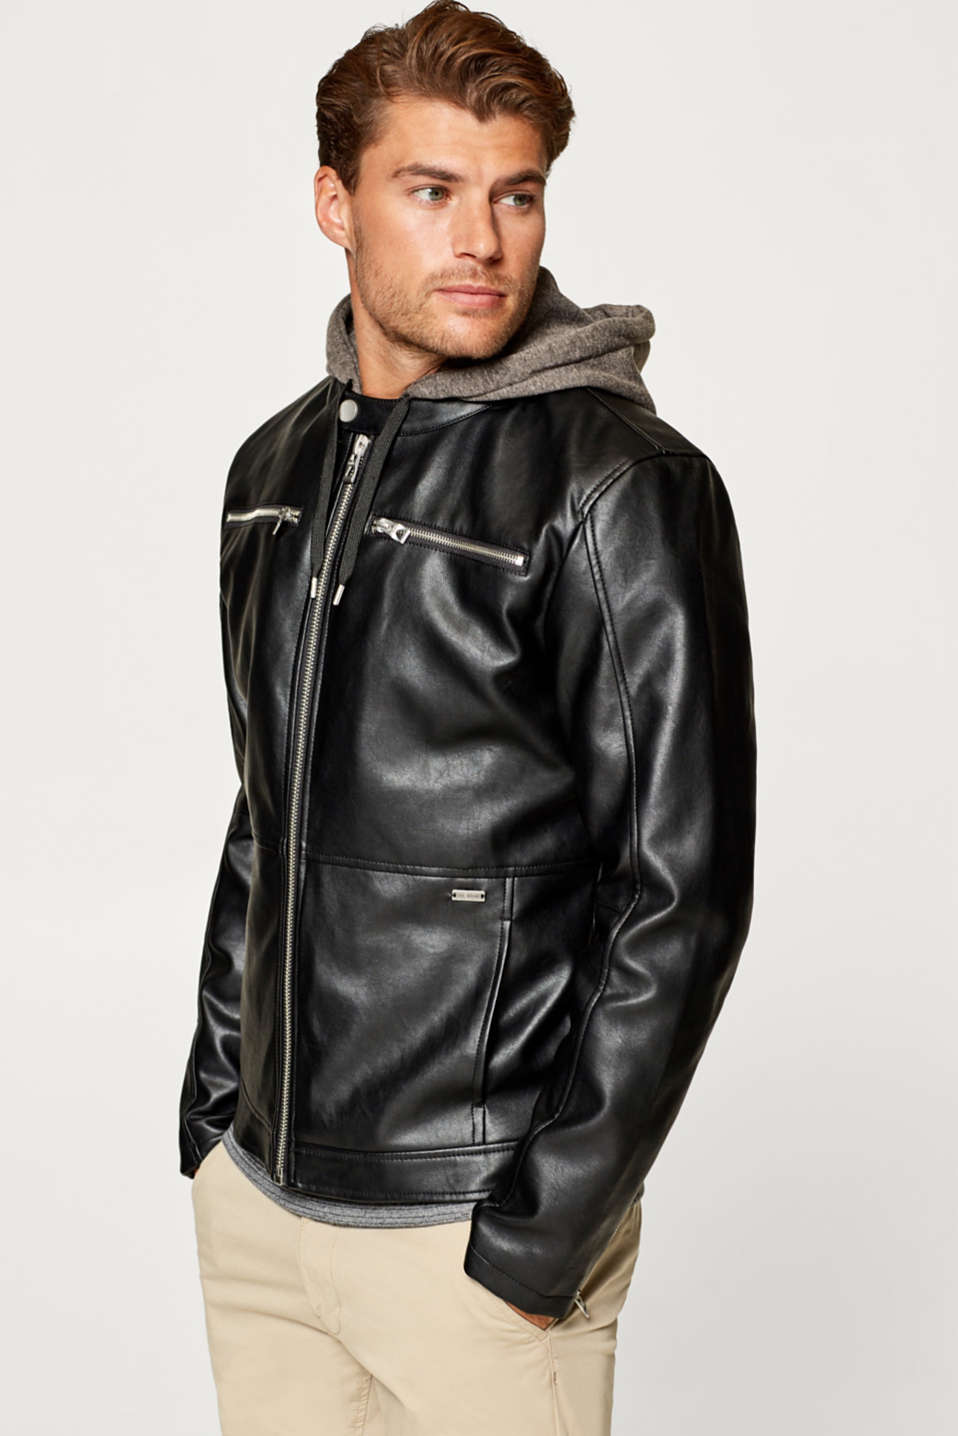 edc - Biker jacket with an adjustable hood, in faux leather